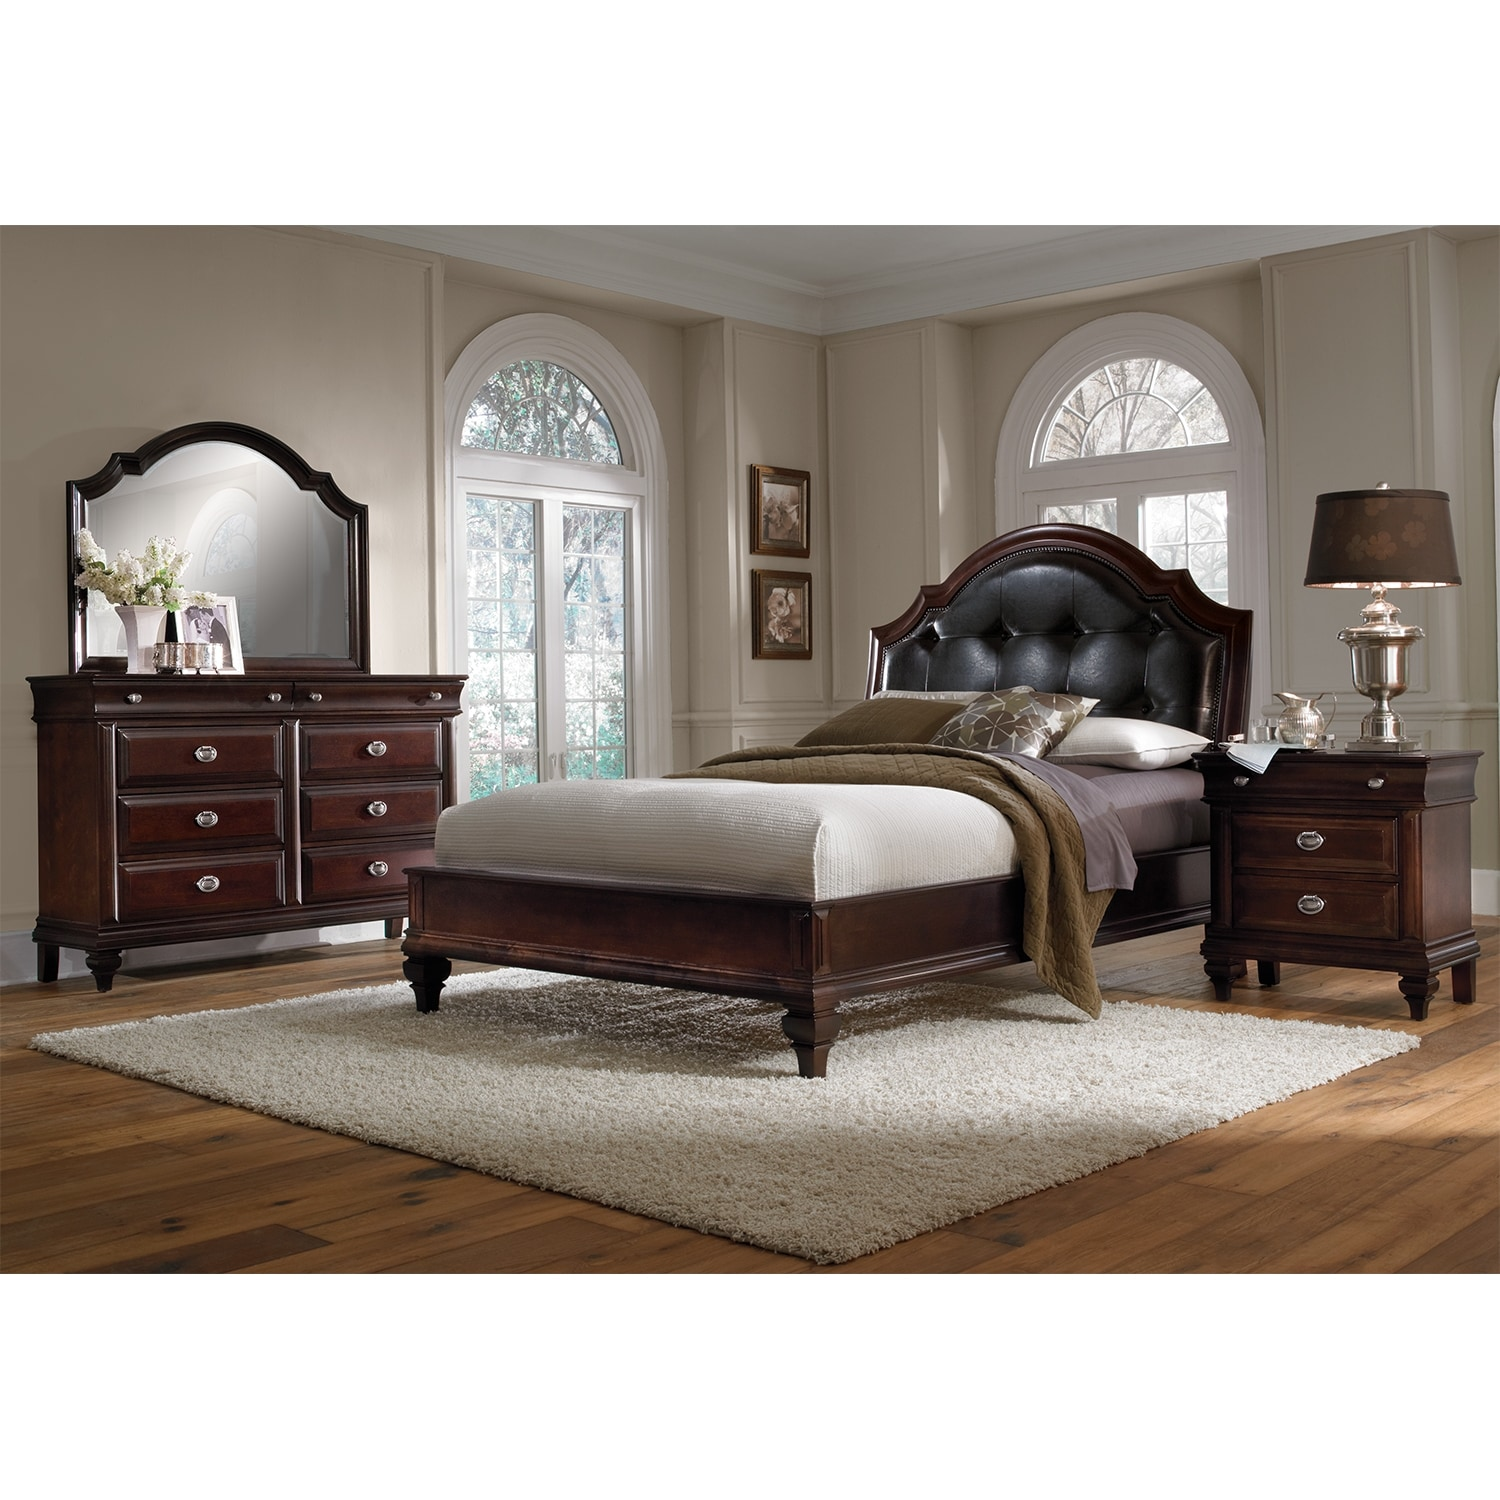 bedroom furniture manhattan 6 piece queen bedroom set cherry